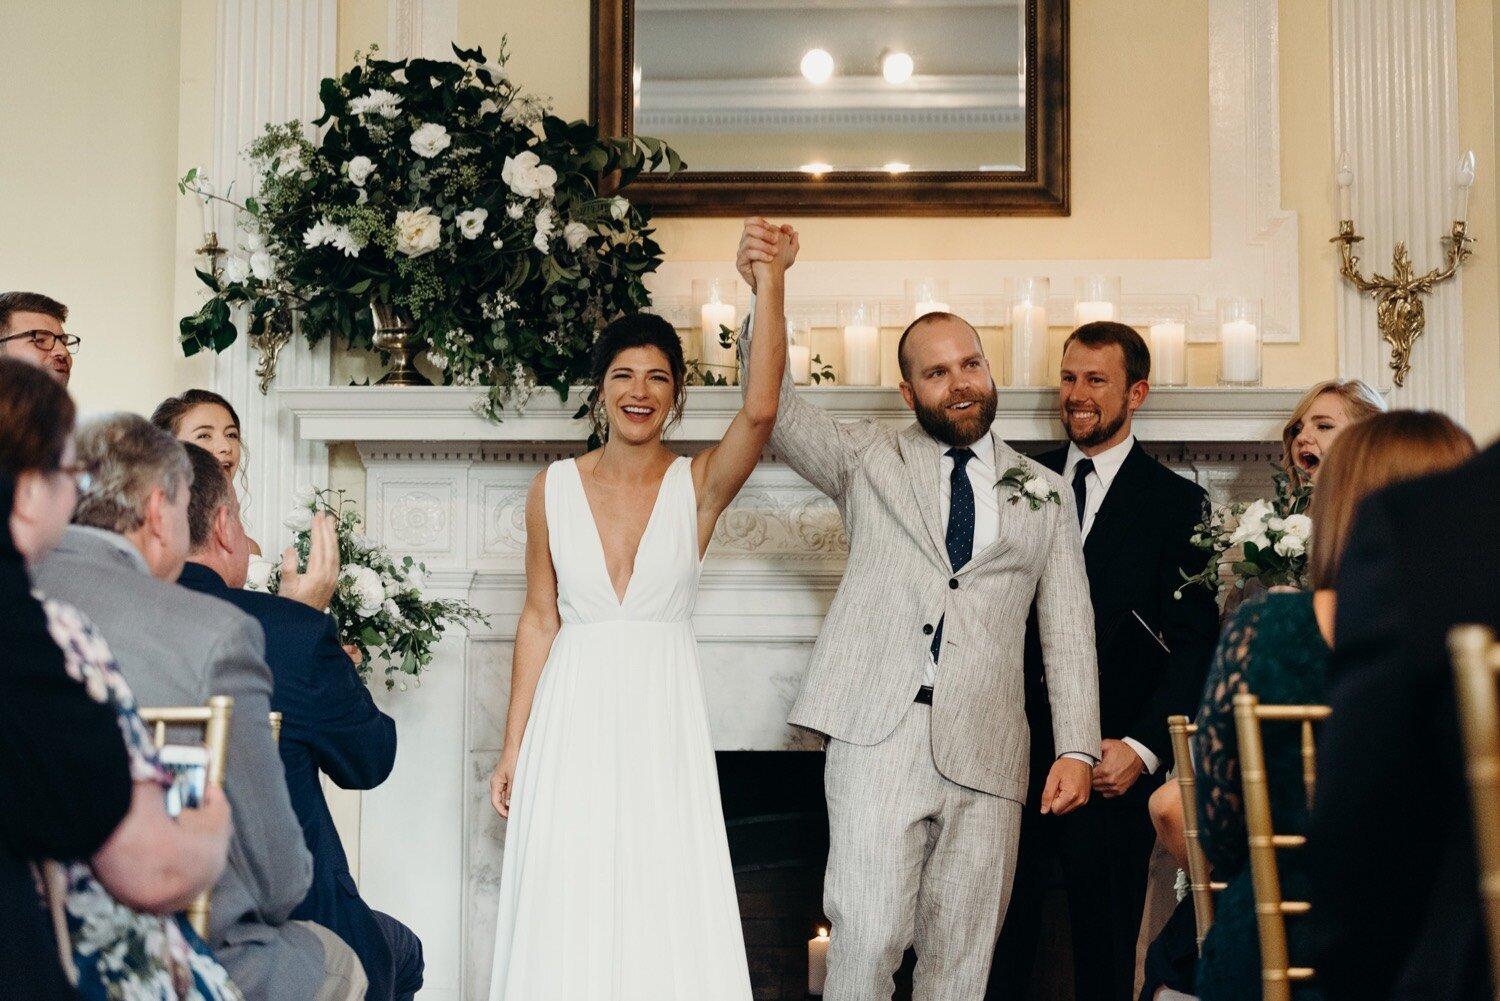 41_josephine_butler_center_photographer_dc_parks_washington_wedding.jpg